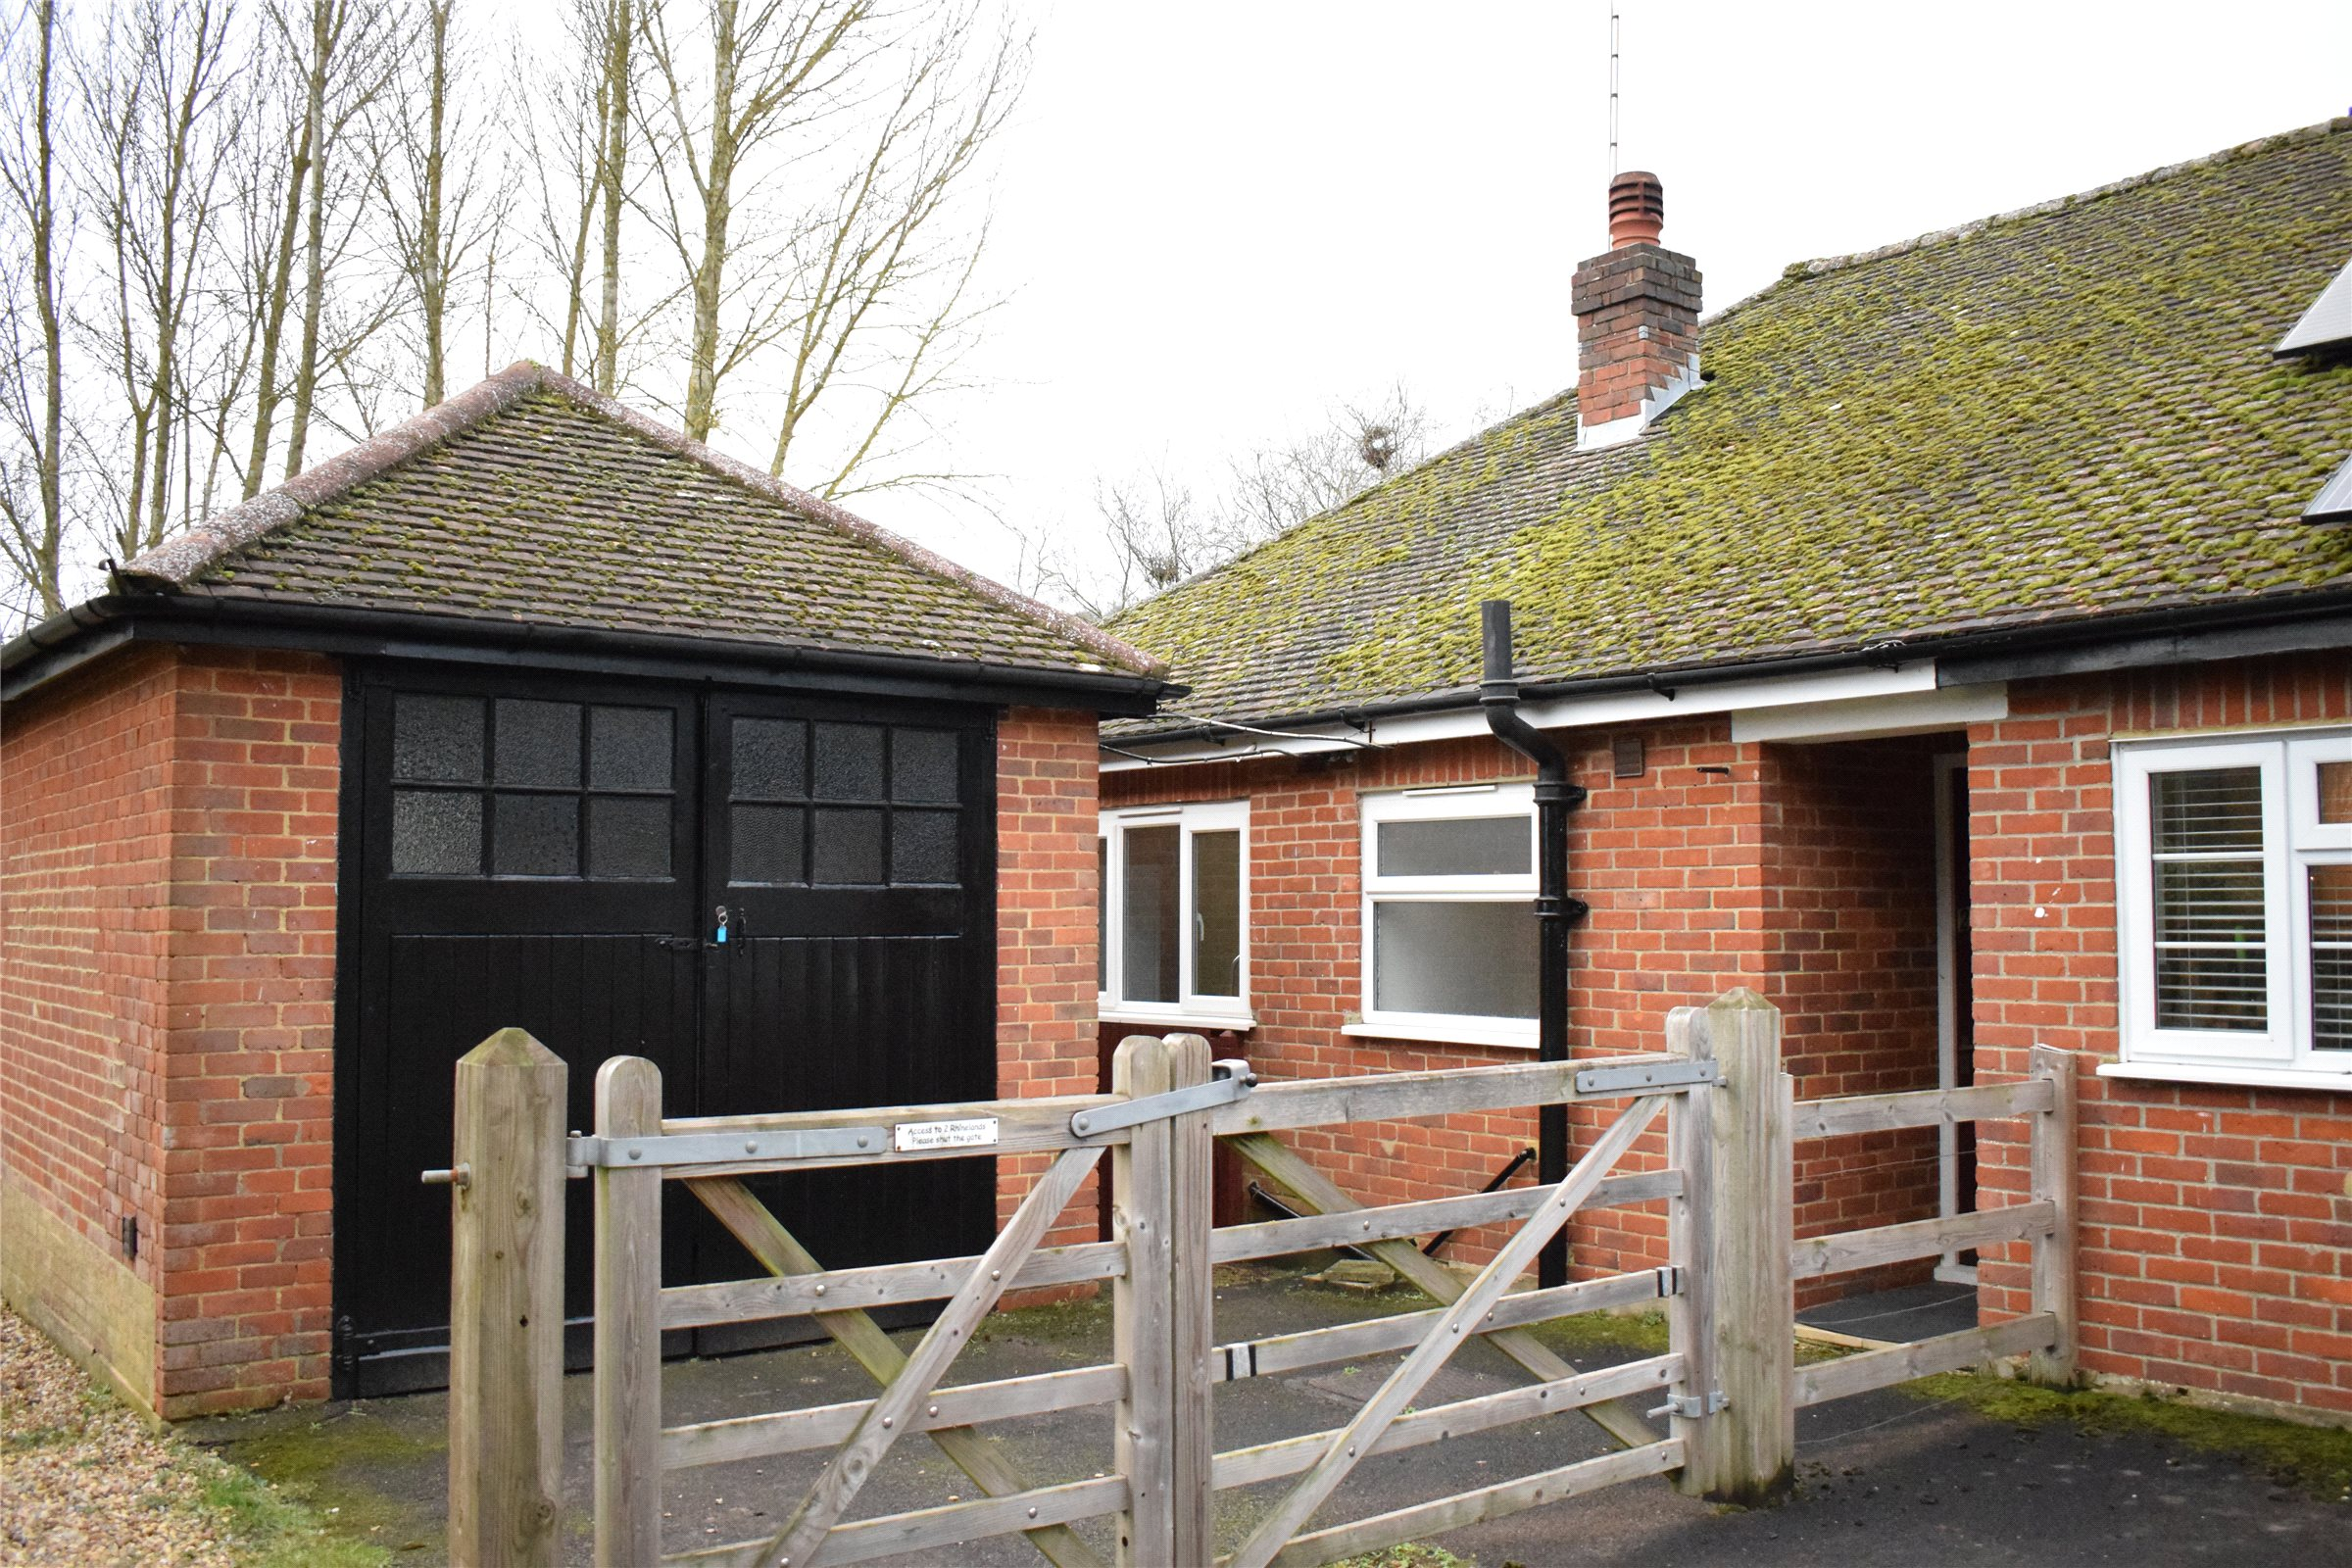 2 Bedrooms Semi Detached Bungalow for sale in Rhinelands, Station Road, Betchworth, Surrey, RH3